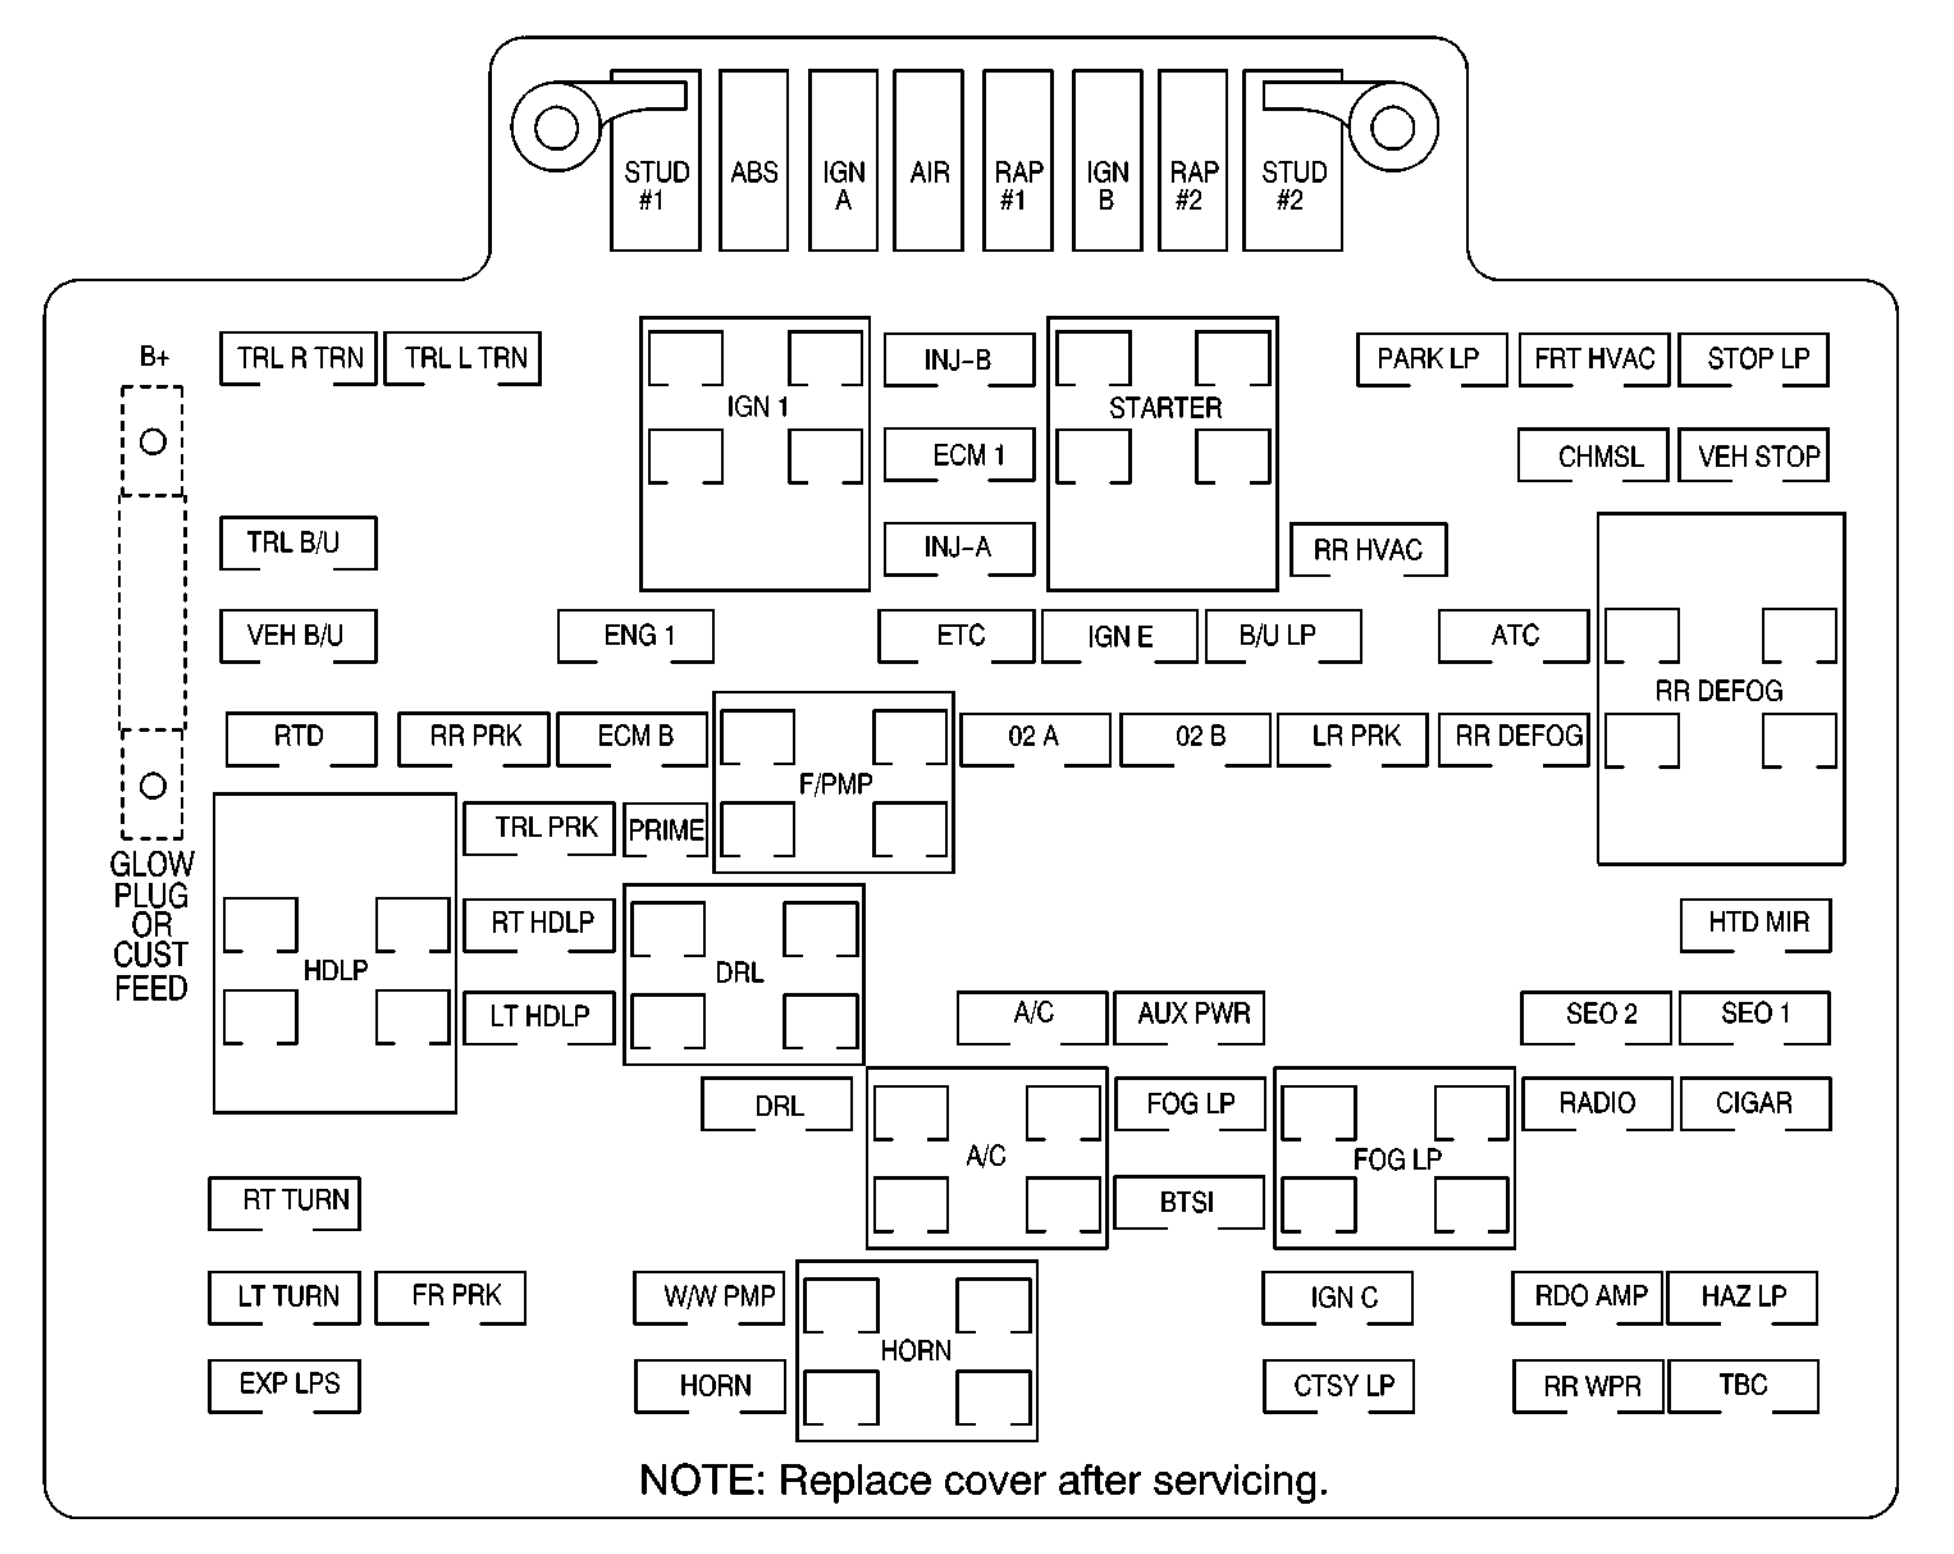 Chevy Fuse Diagram | Wiring Diagram on srx fuse box, sentra fuse box, ram 1500 fuse box, pathfinder fuse box, accord fuse box, equinox fuse box, sebring fuse box, highlander fuse box, murano fuse box, grand cherokee fuse box, montero fuse box, g6 fuse box, dakota fuse box, mercury villager fuse box, cr-v fuse box, charger fuse box, durango fuse box, chevy tracker fuse box, liberty fuse box, new beetle fuse box,